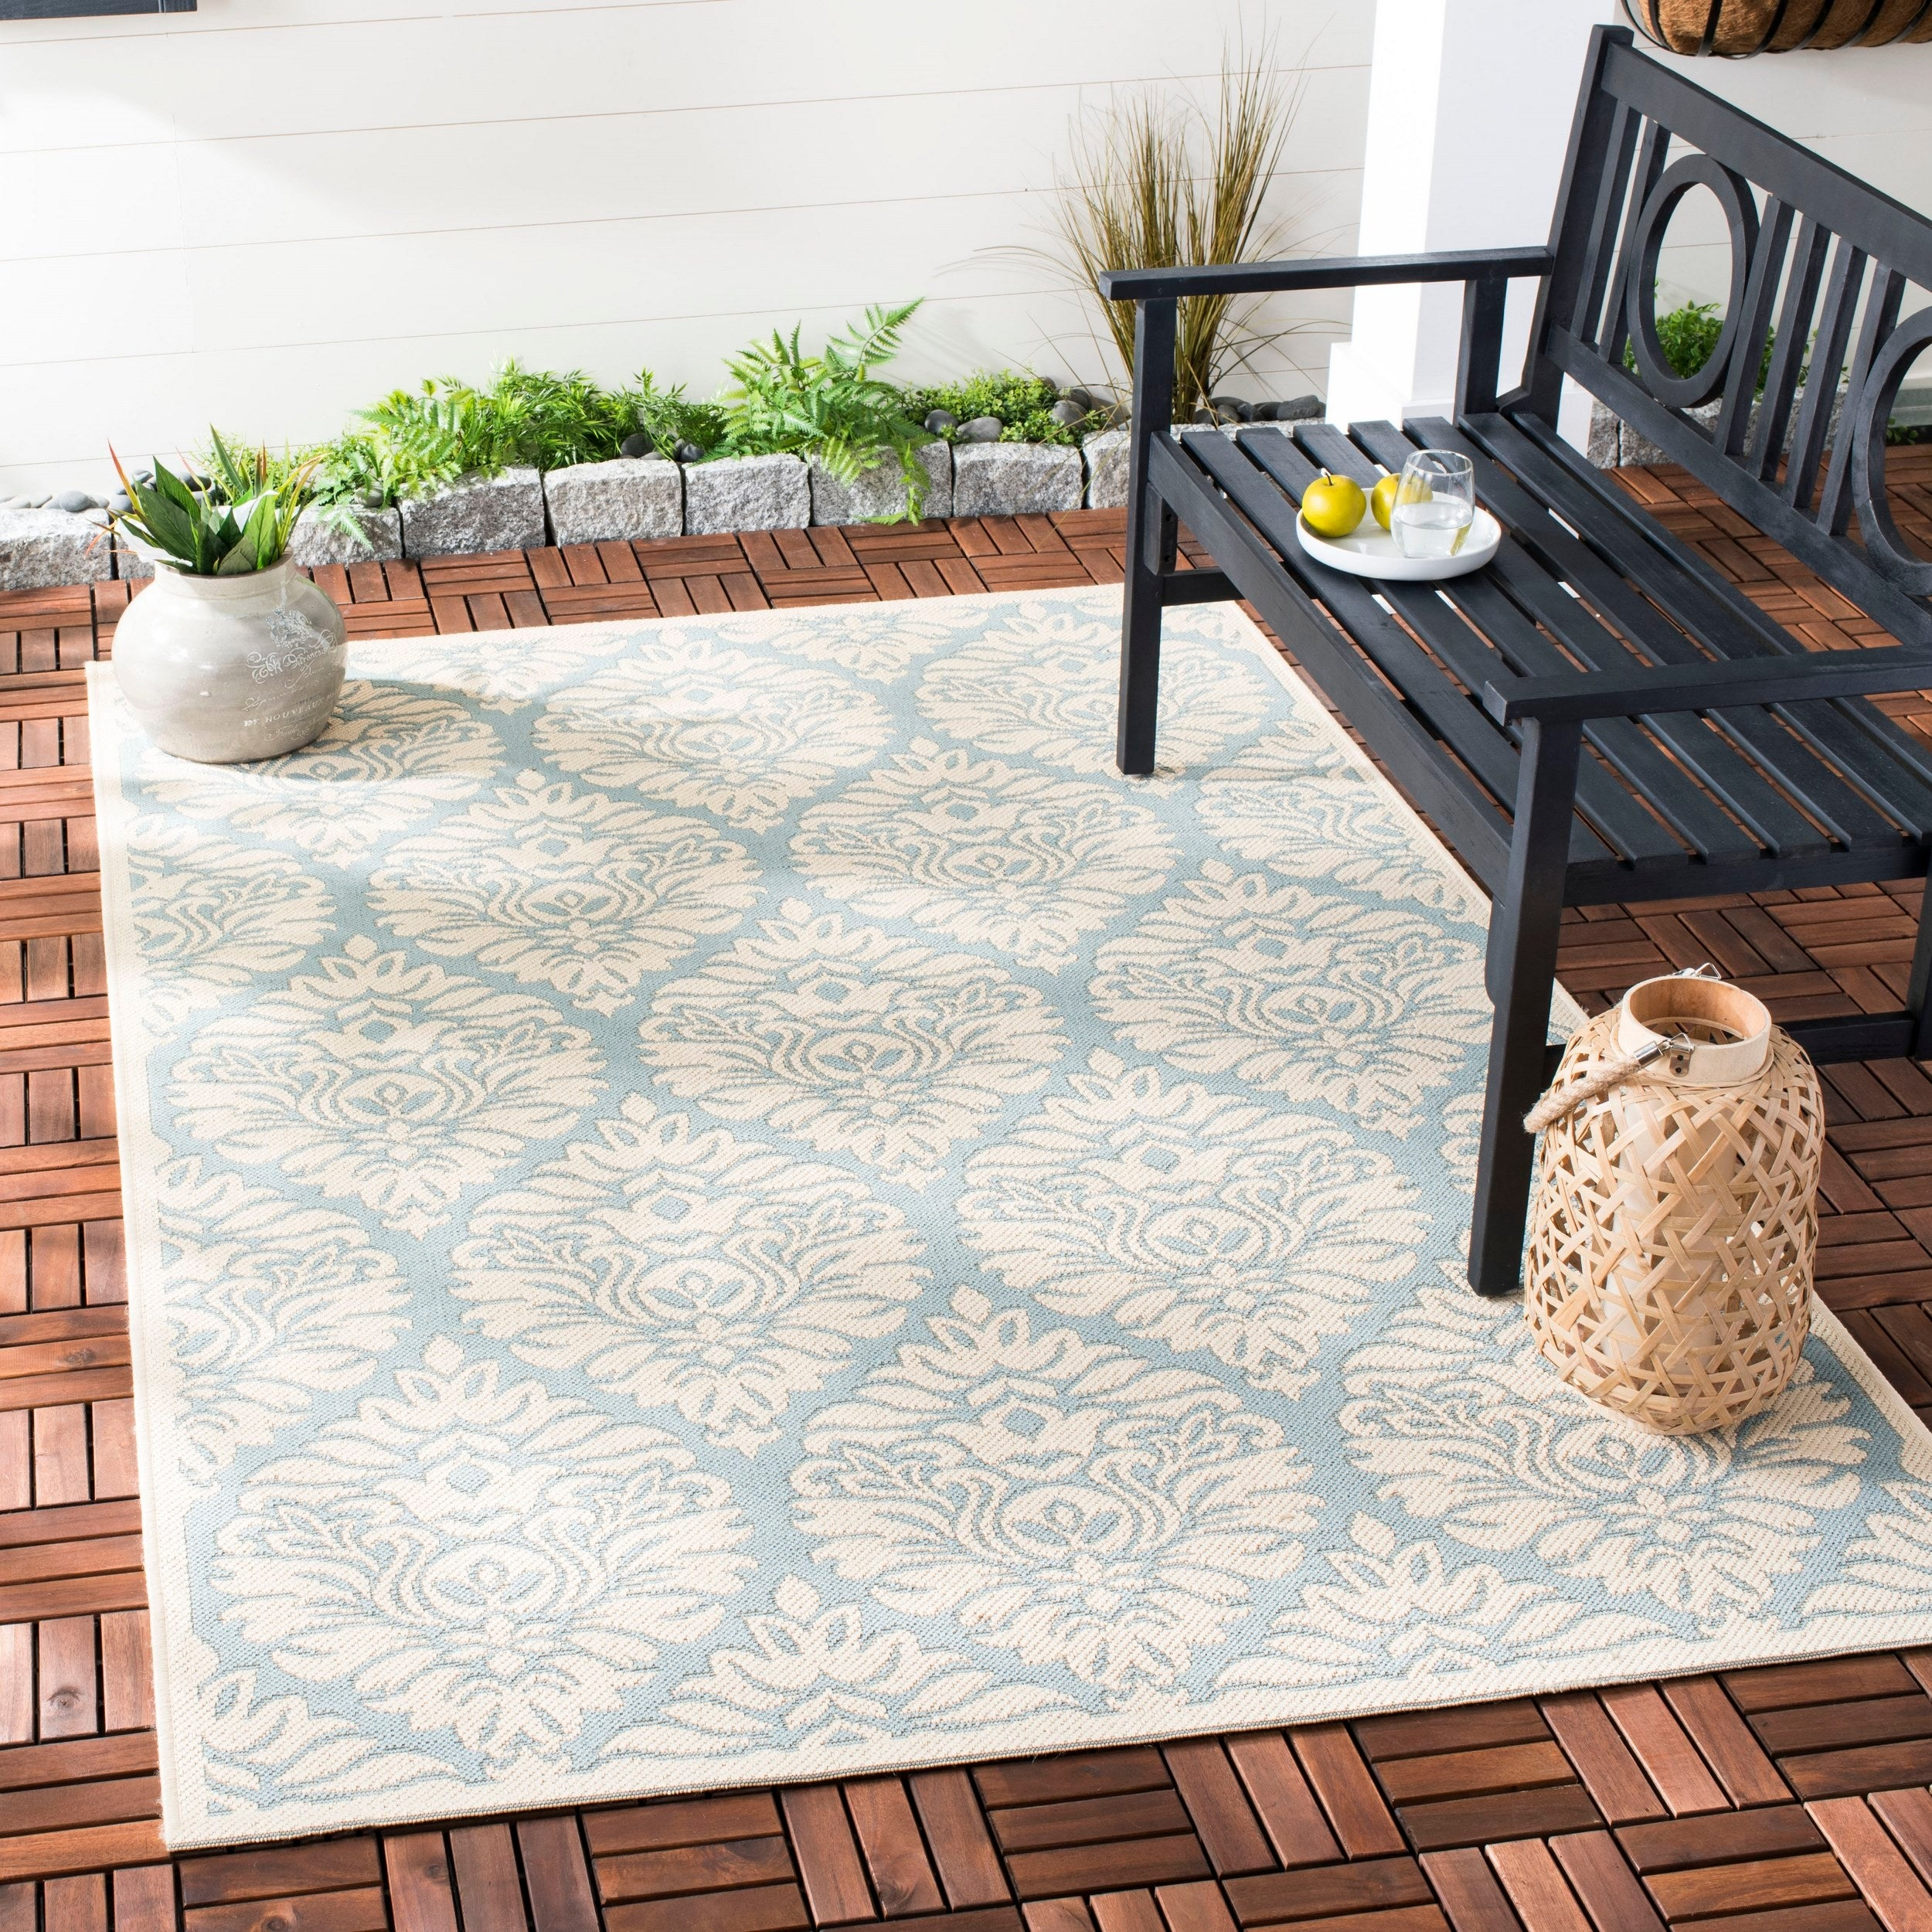 Beach House Sada Indoor Outdoor Rug